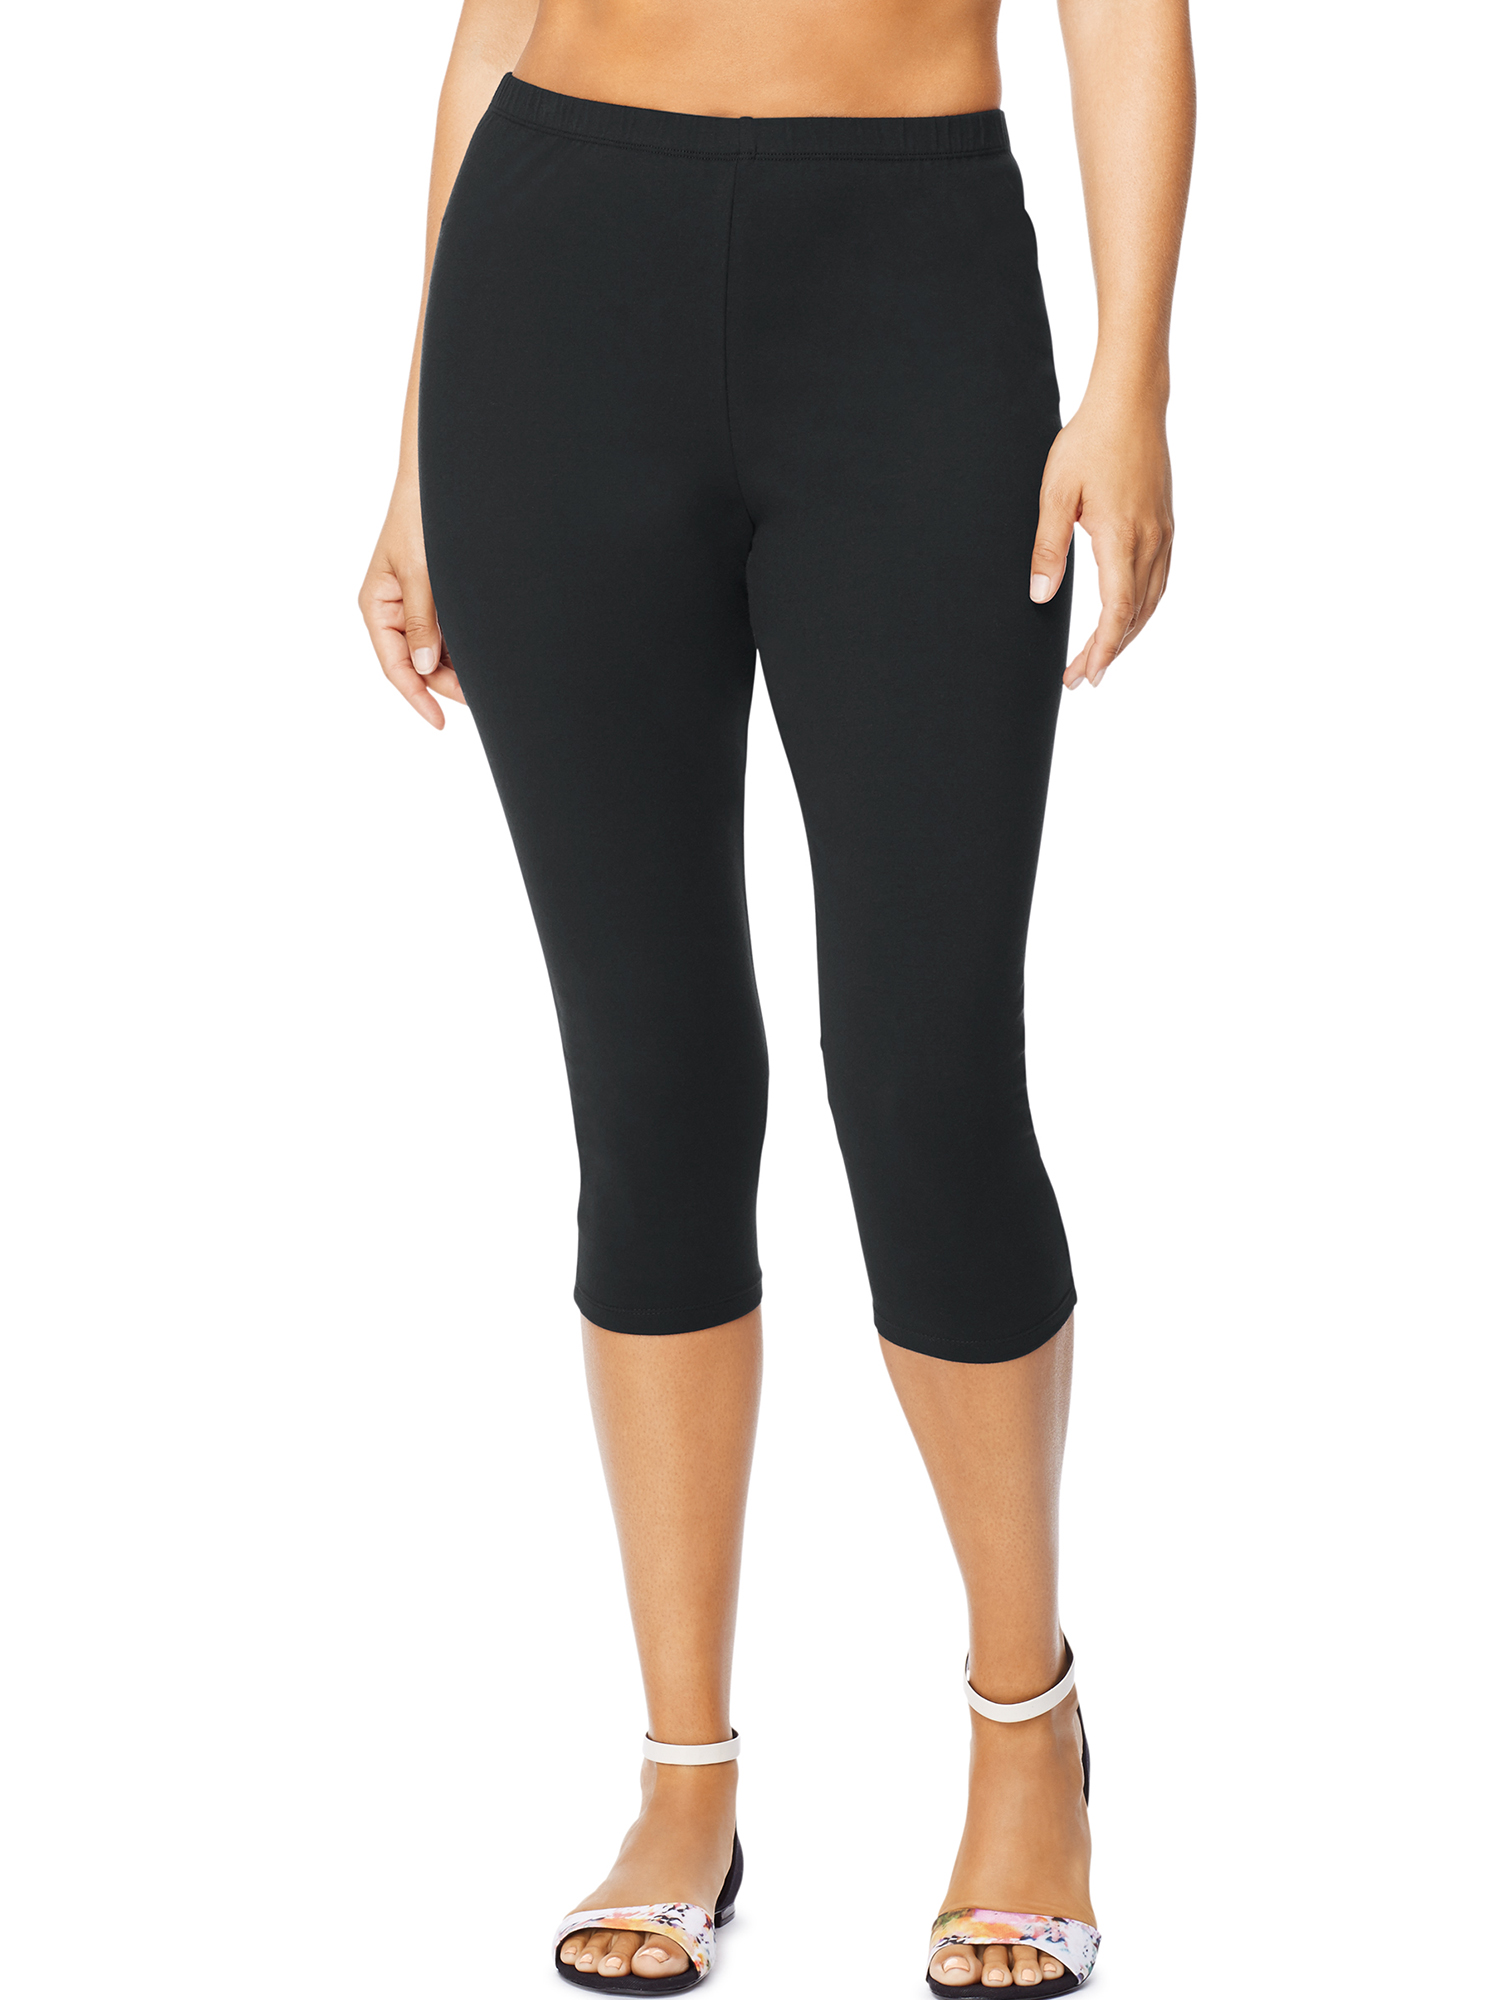 Women's Plus-Size Stretch Jersey Capri Legging